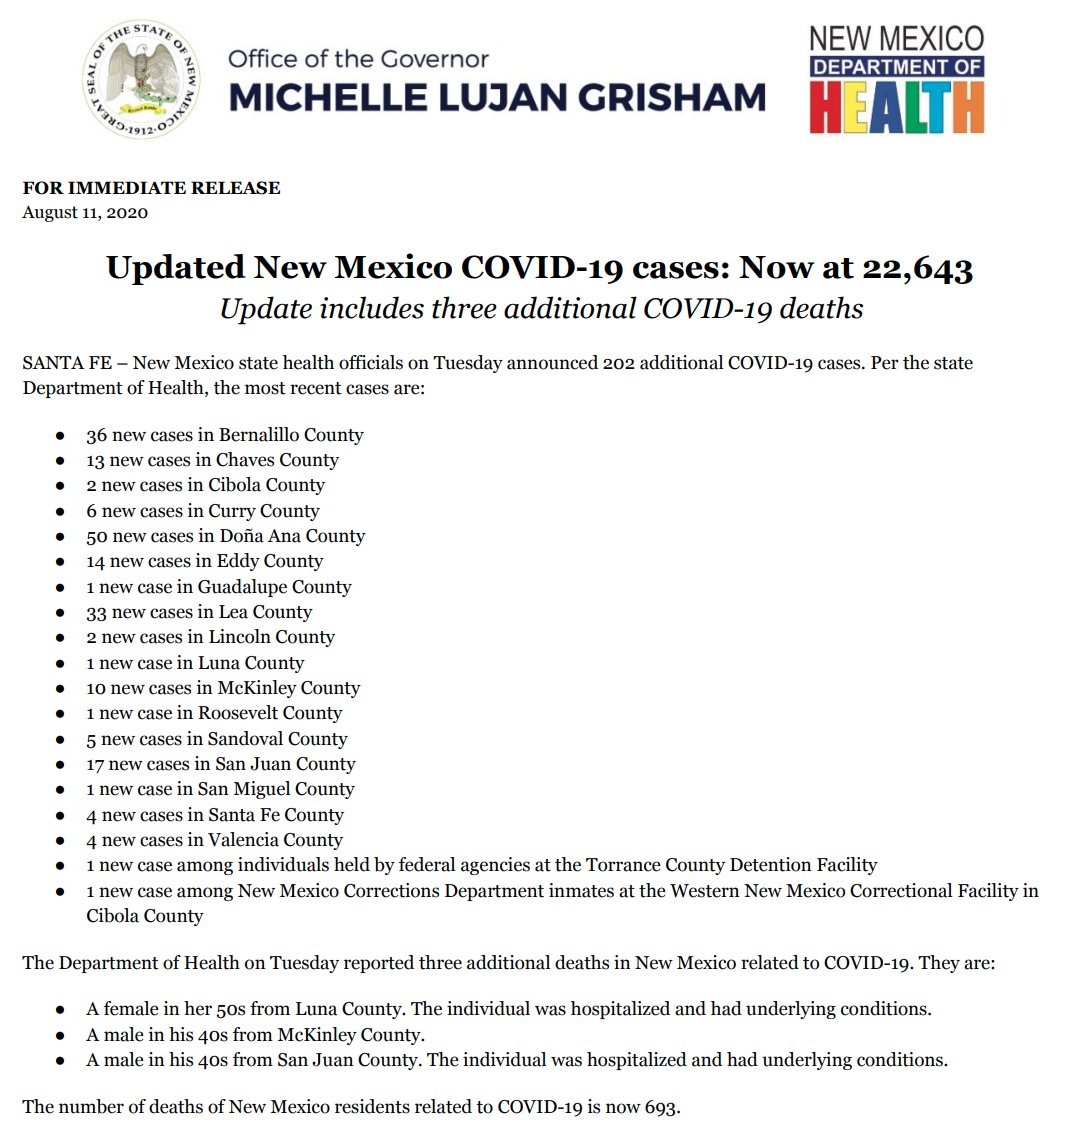 Today's #COVID19 update:  - 202 new COVID-19 cases, totaling 22,643 cases statewide  - Three additional deaths, totaling 693 deaths statewide  - 134 individuals currently hospitalized with COVID-19  Mask up. Avoid groups. #ProtectNM  More info here: